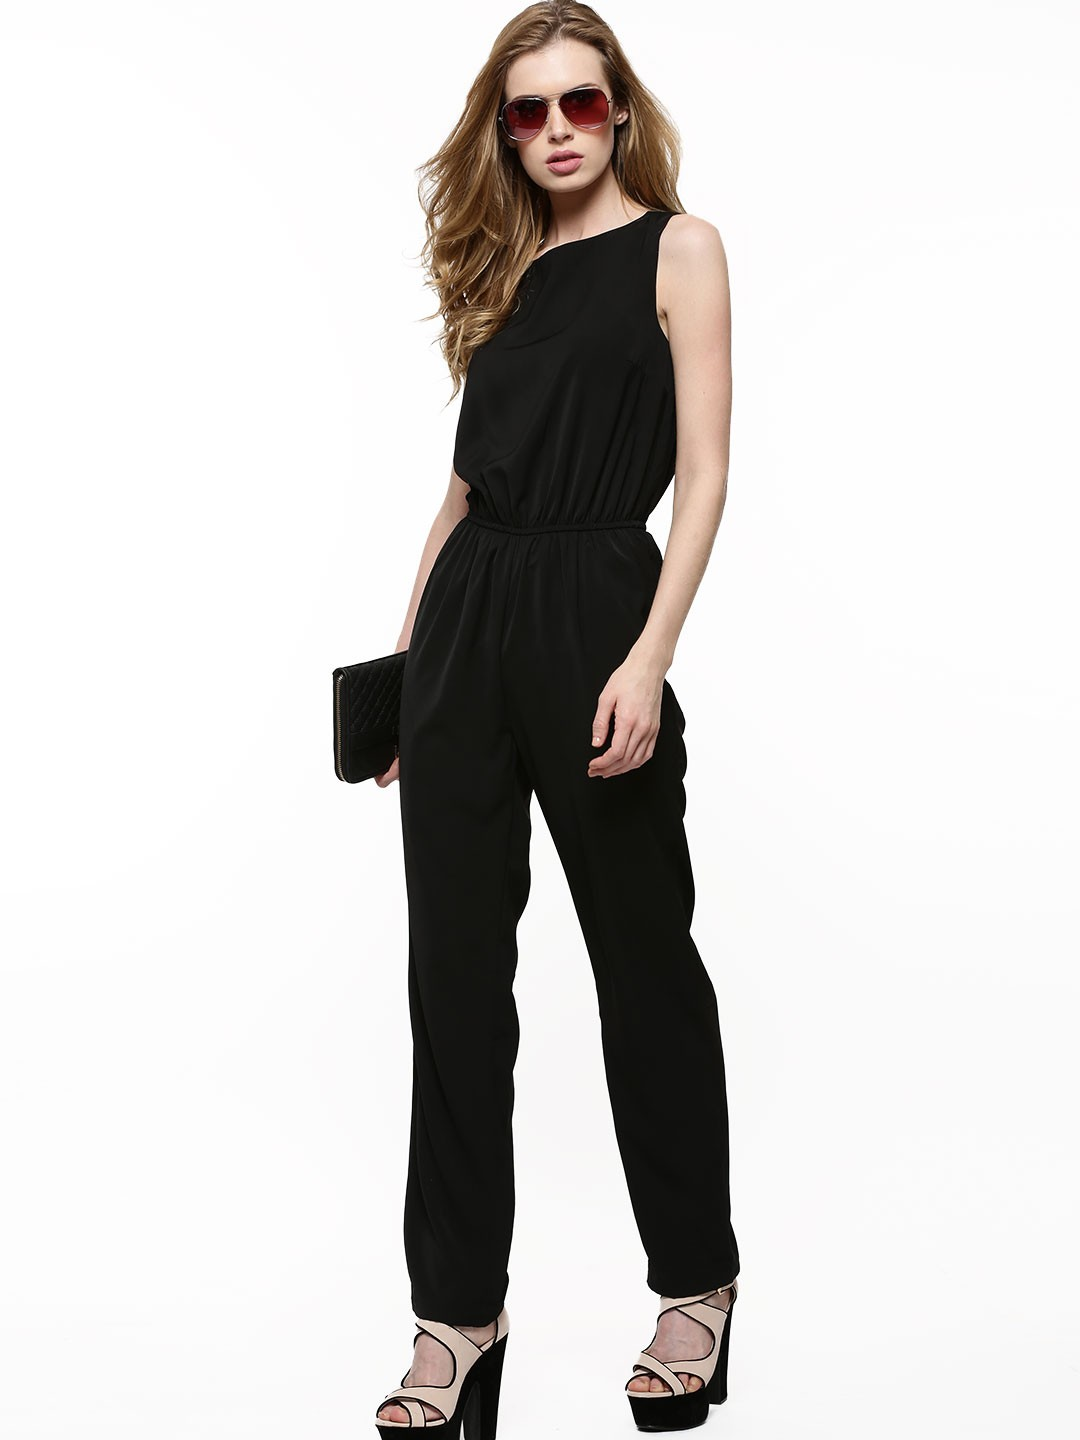 buy vero moda elasticated waist jumpsuit for women women 39 s black jumpsuits online in india. Black Bedroom Furniture Sets. Home Design Ideas